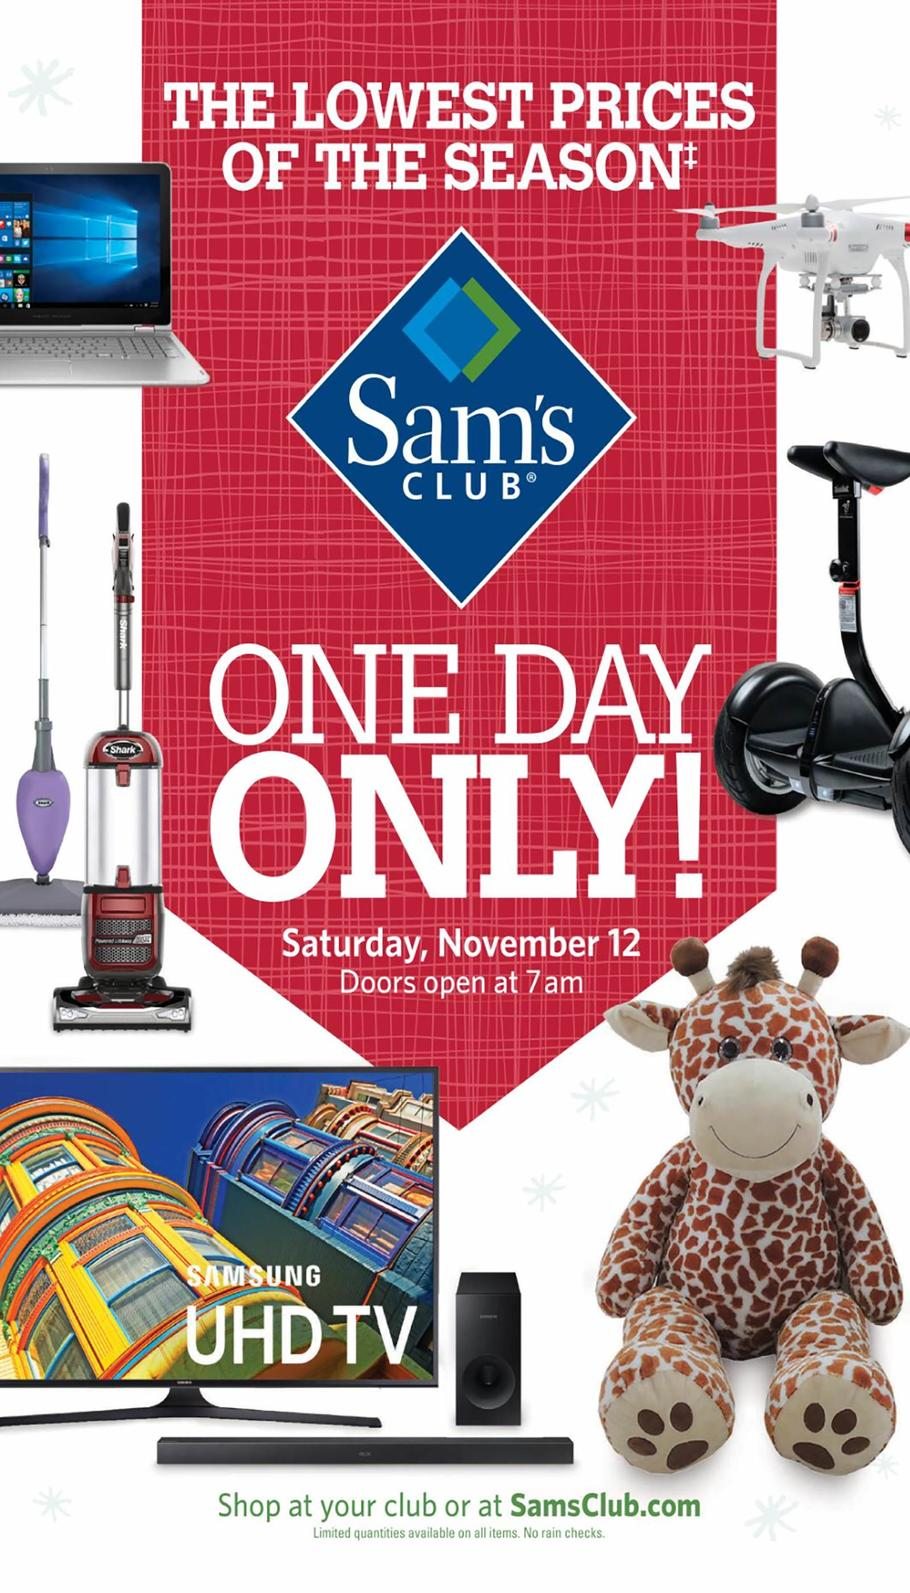 sams-club-lowest-price-of-the-season-2016-p-1